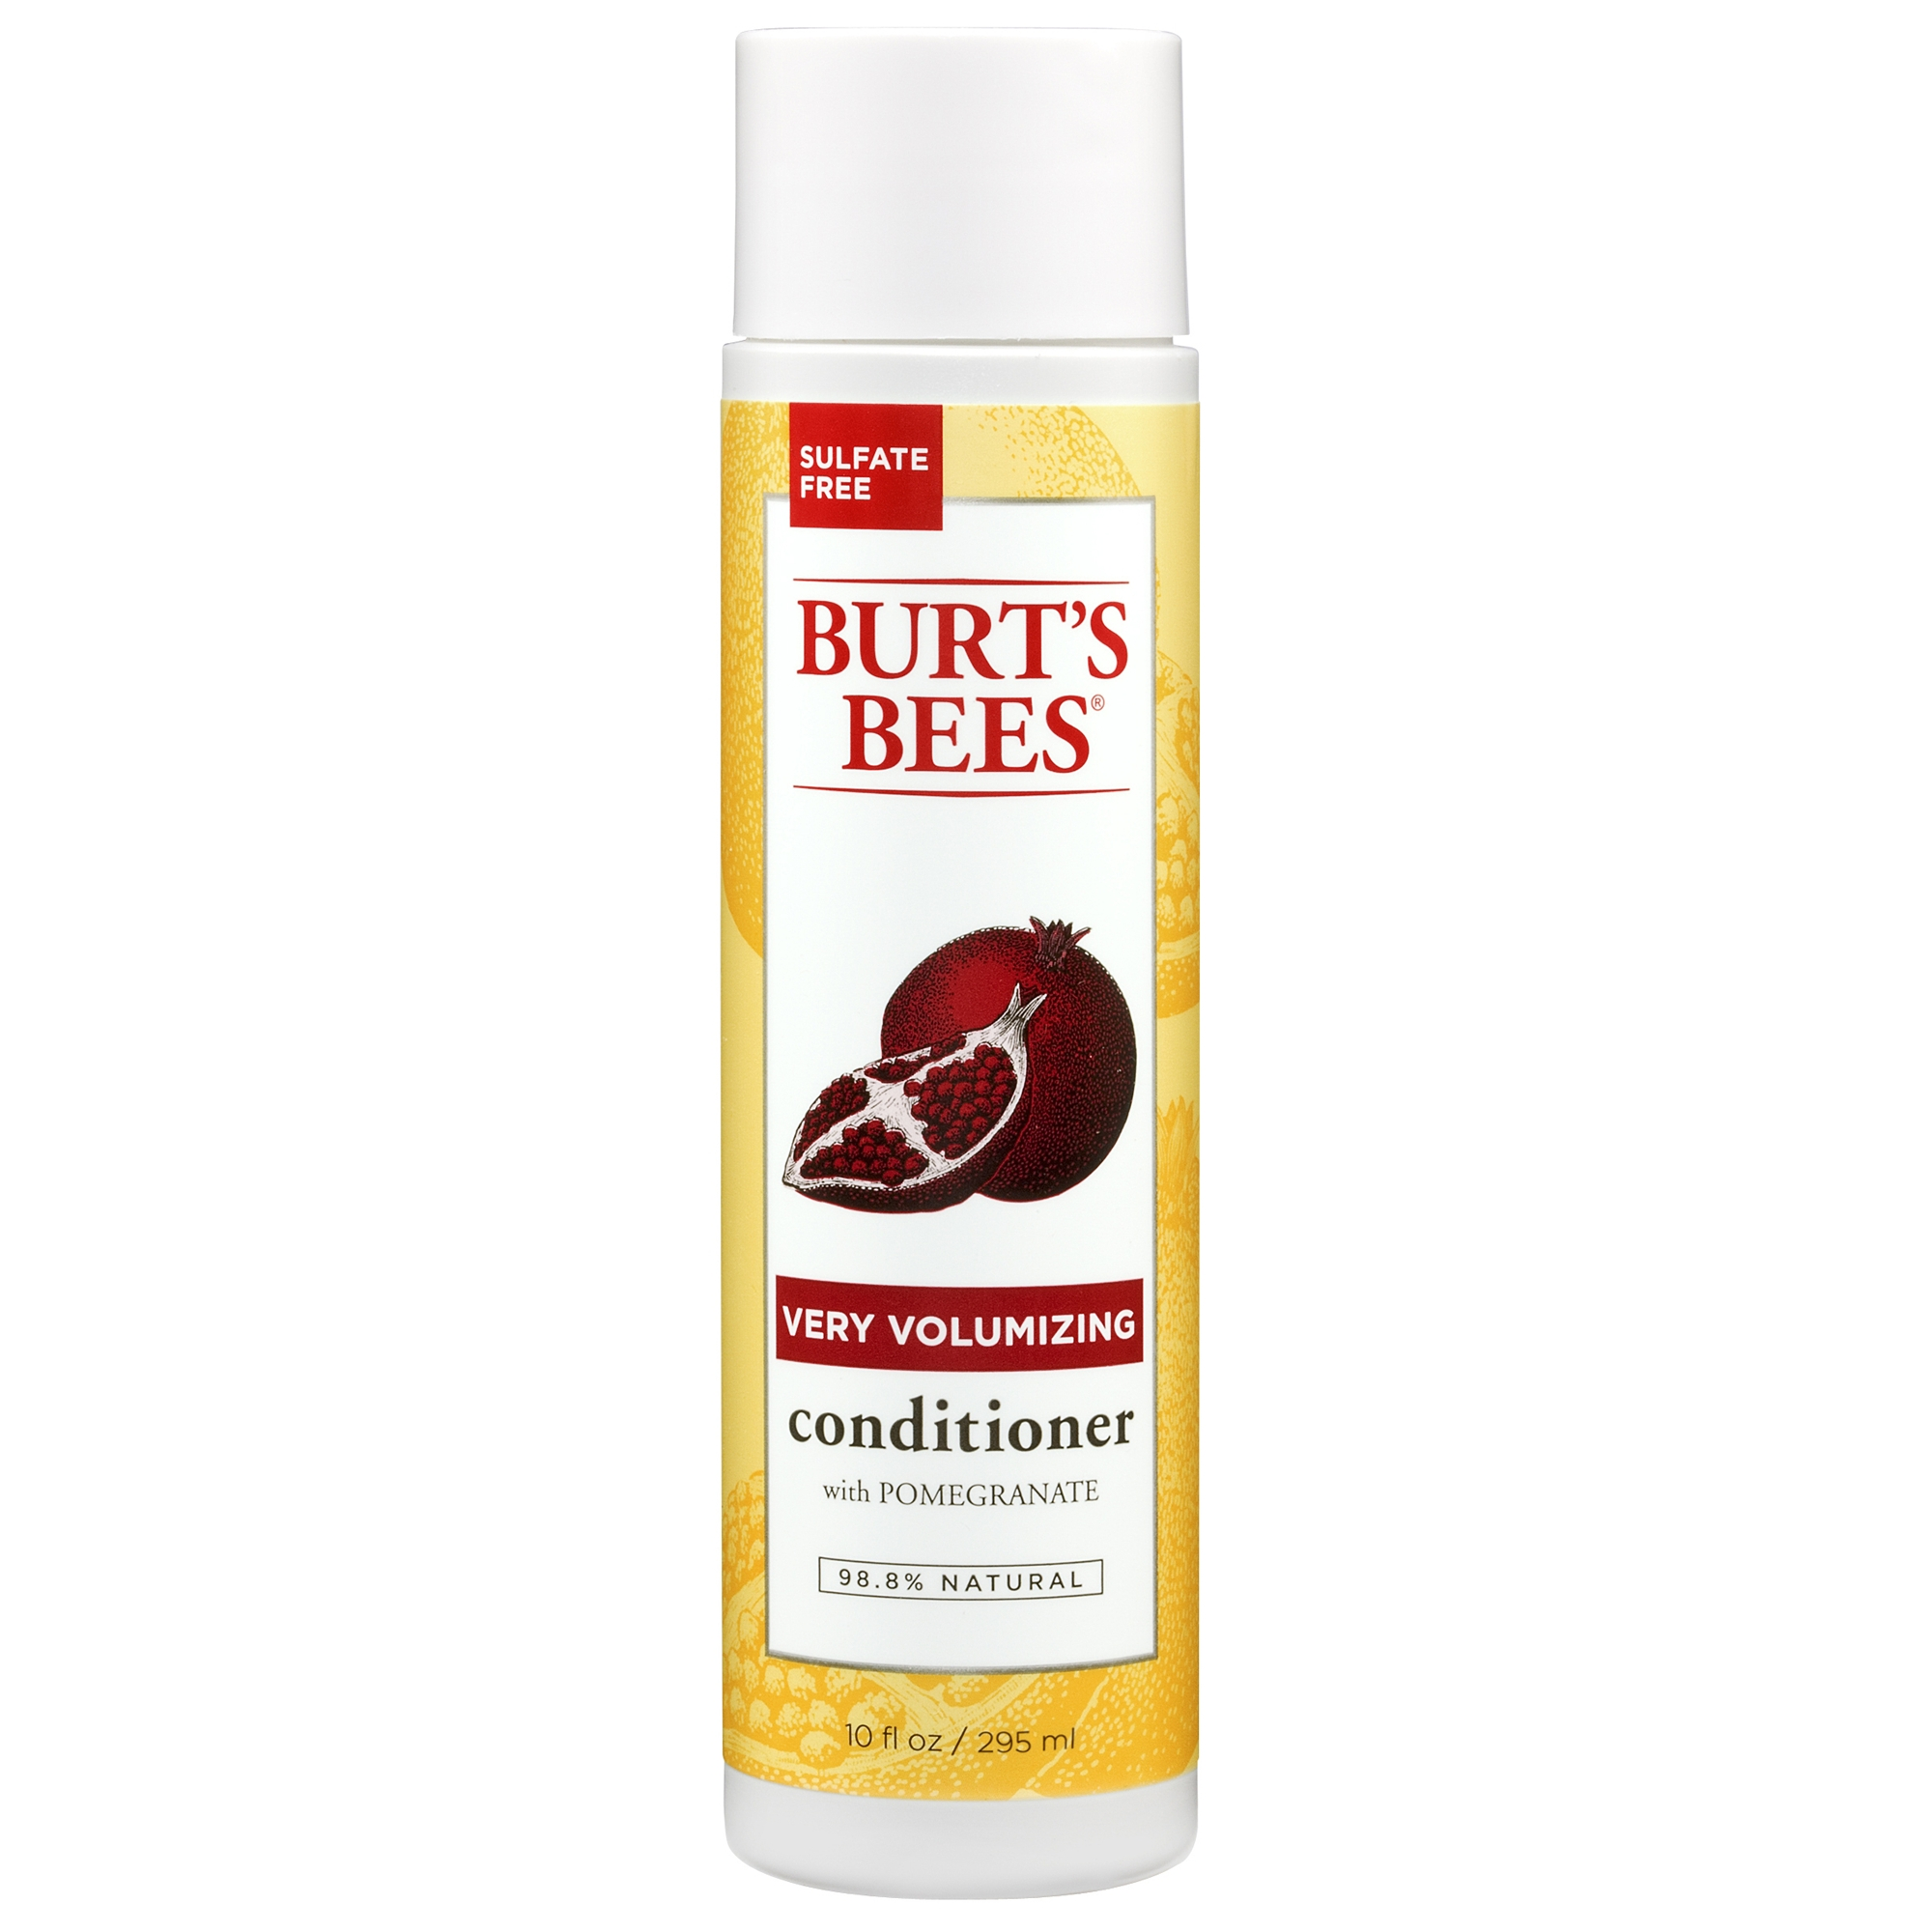 Burt's Bees Very Volumizing Conditioner, Pomegranate Scent, 10 oz